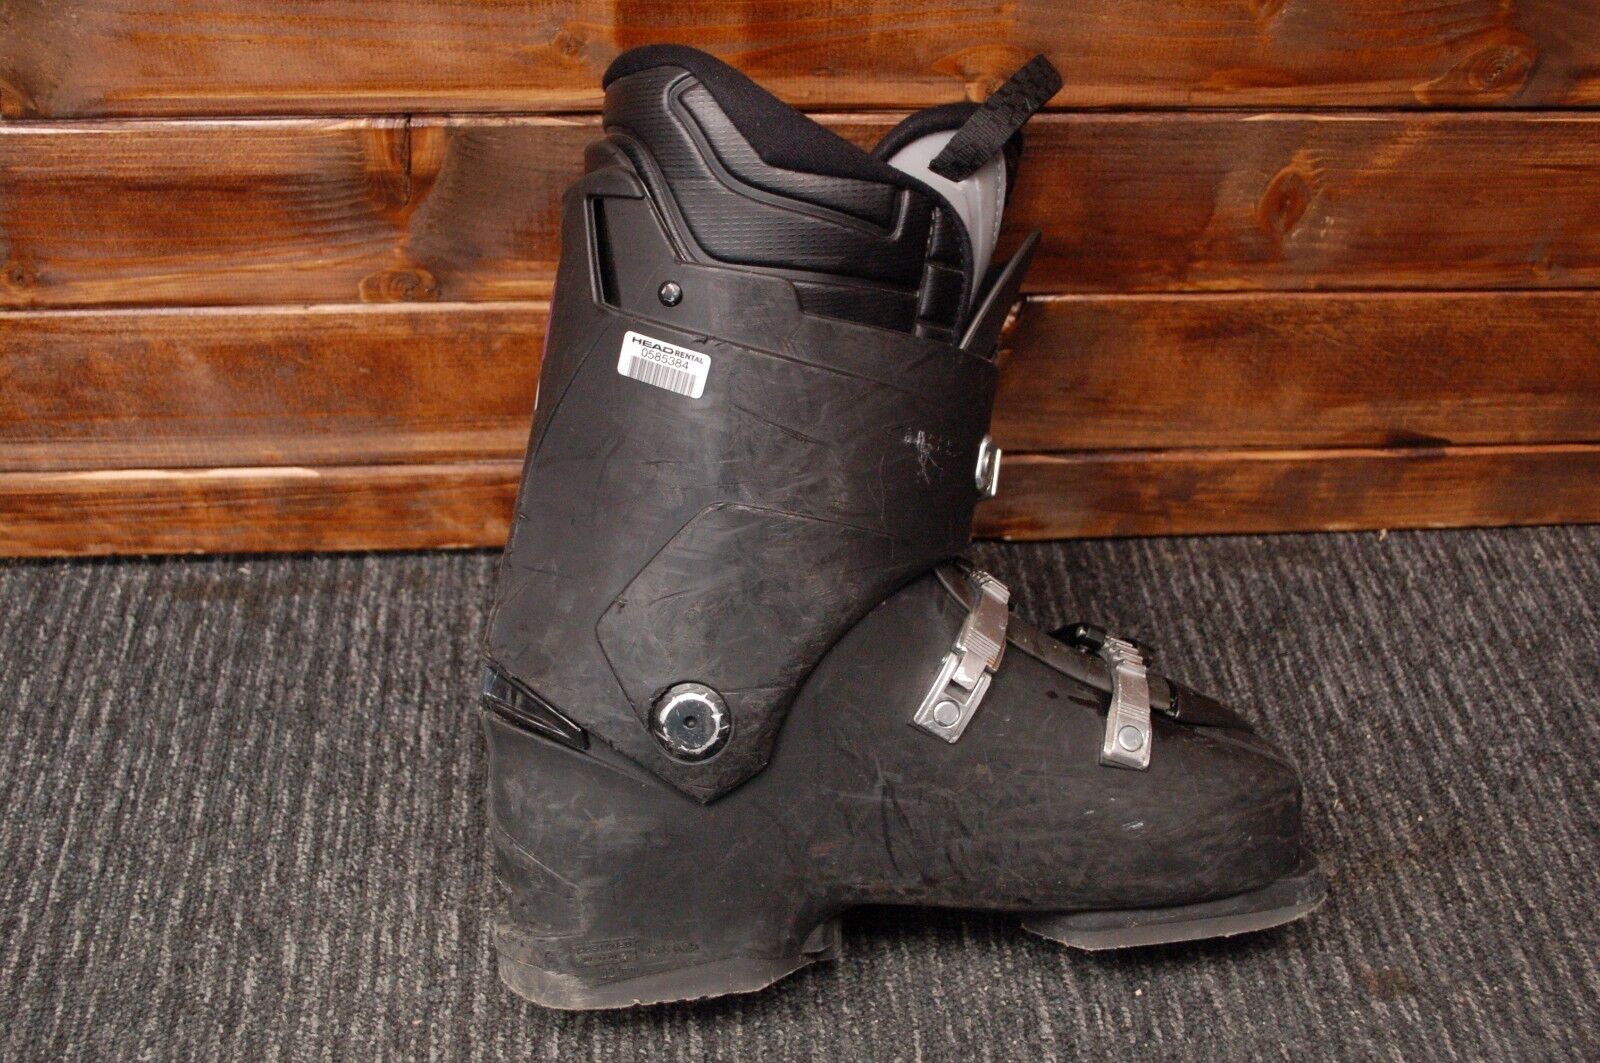 HEAD FX 65 HT Ski Stiefel (US 9; EU EU EU 42.5; UK 8.5) 3cdb83